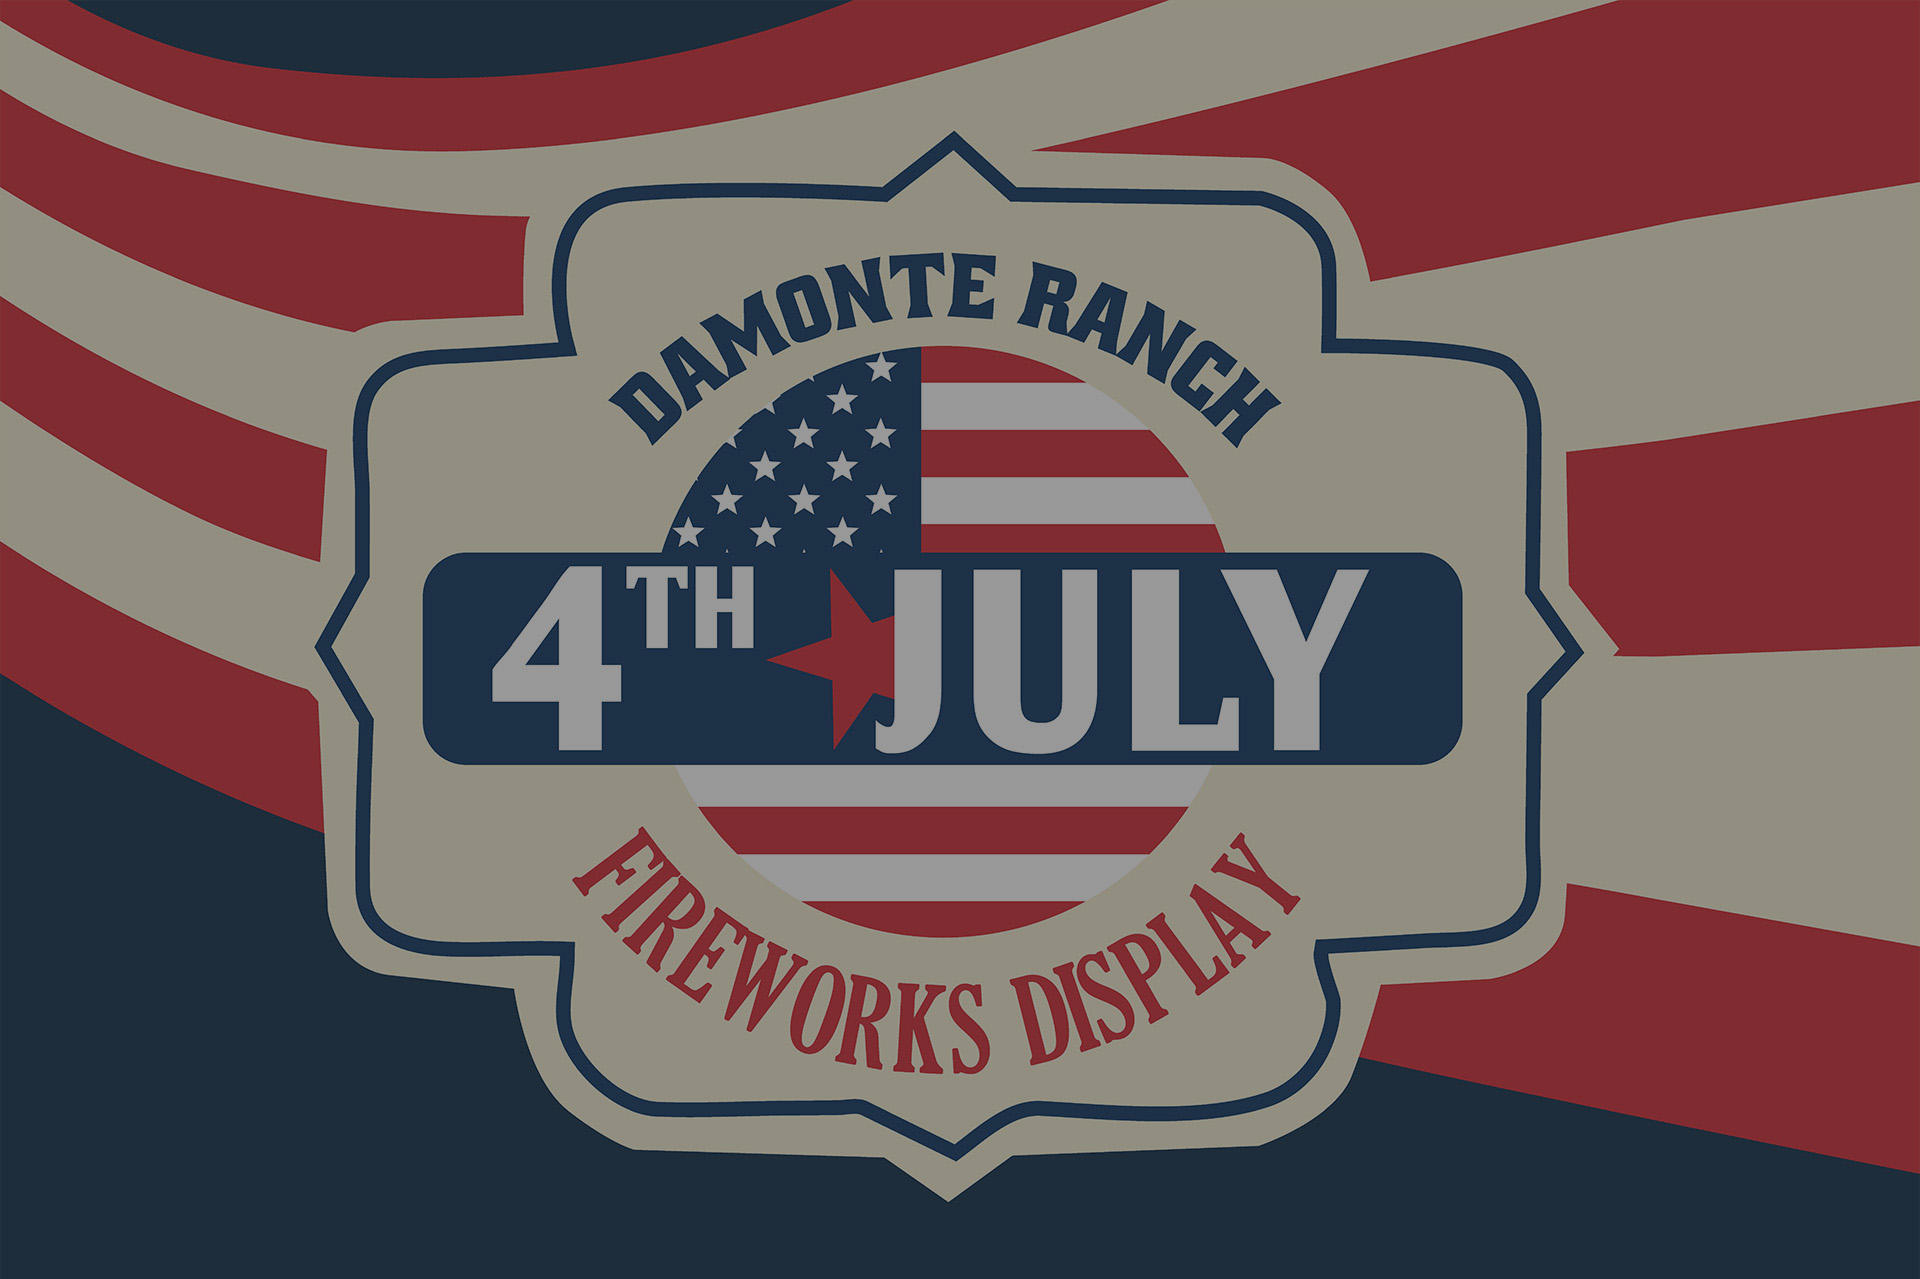 Damonte Ranch 4th of July 2020